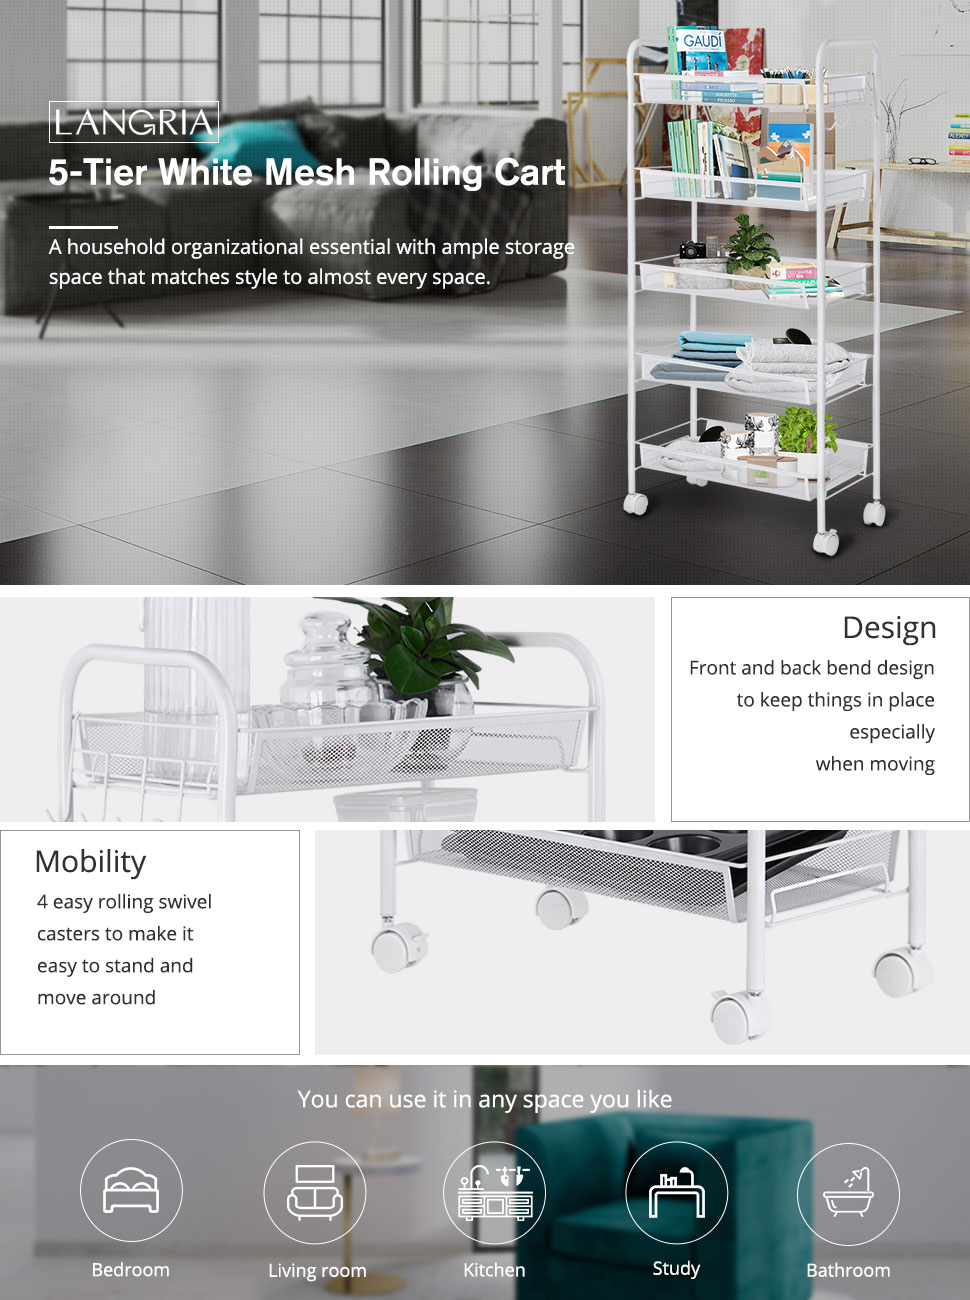 SONGMICS Rolling Cart Office for Bathroom Easy Assembly Kitchen 5-Tier Metal Storage Cart Black UBSC063B01 Utility Cart with Handles Kitchen Storage Trolley with 2 Brakes